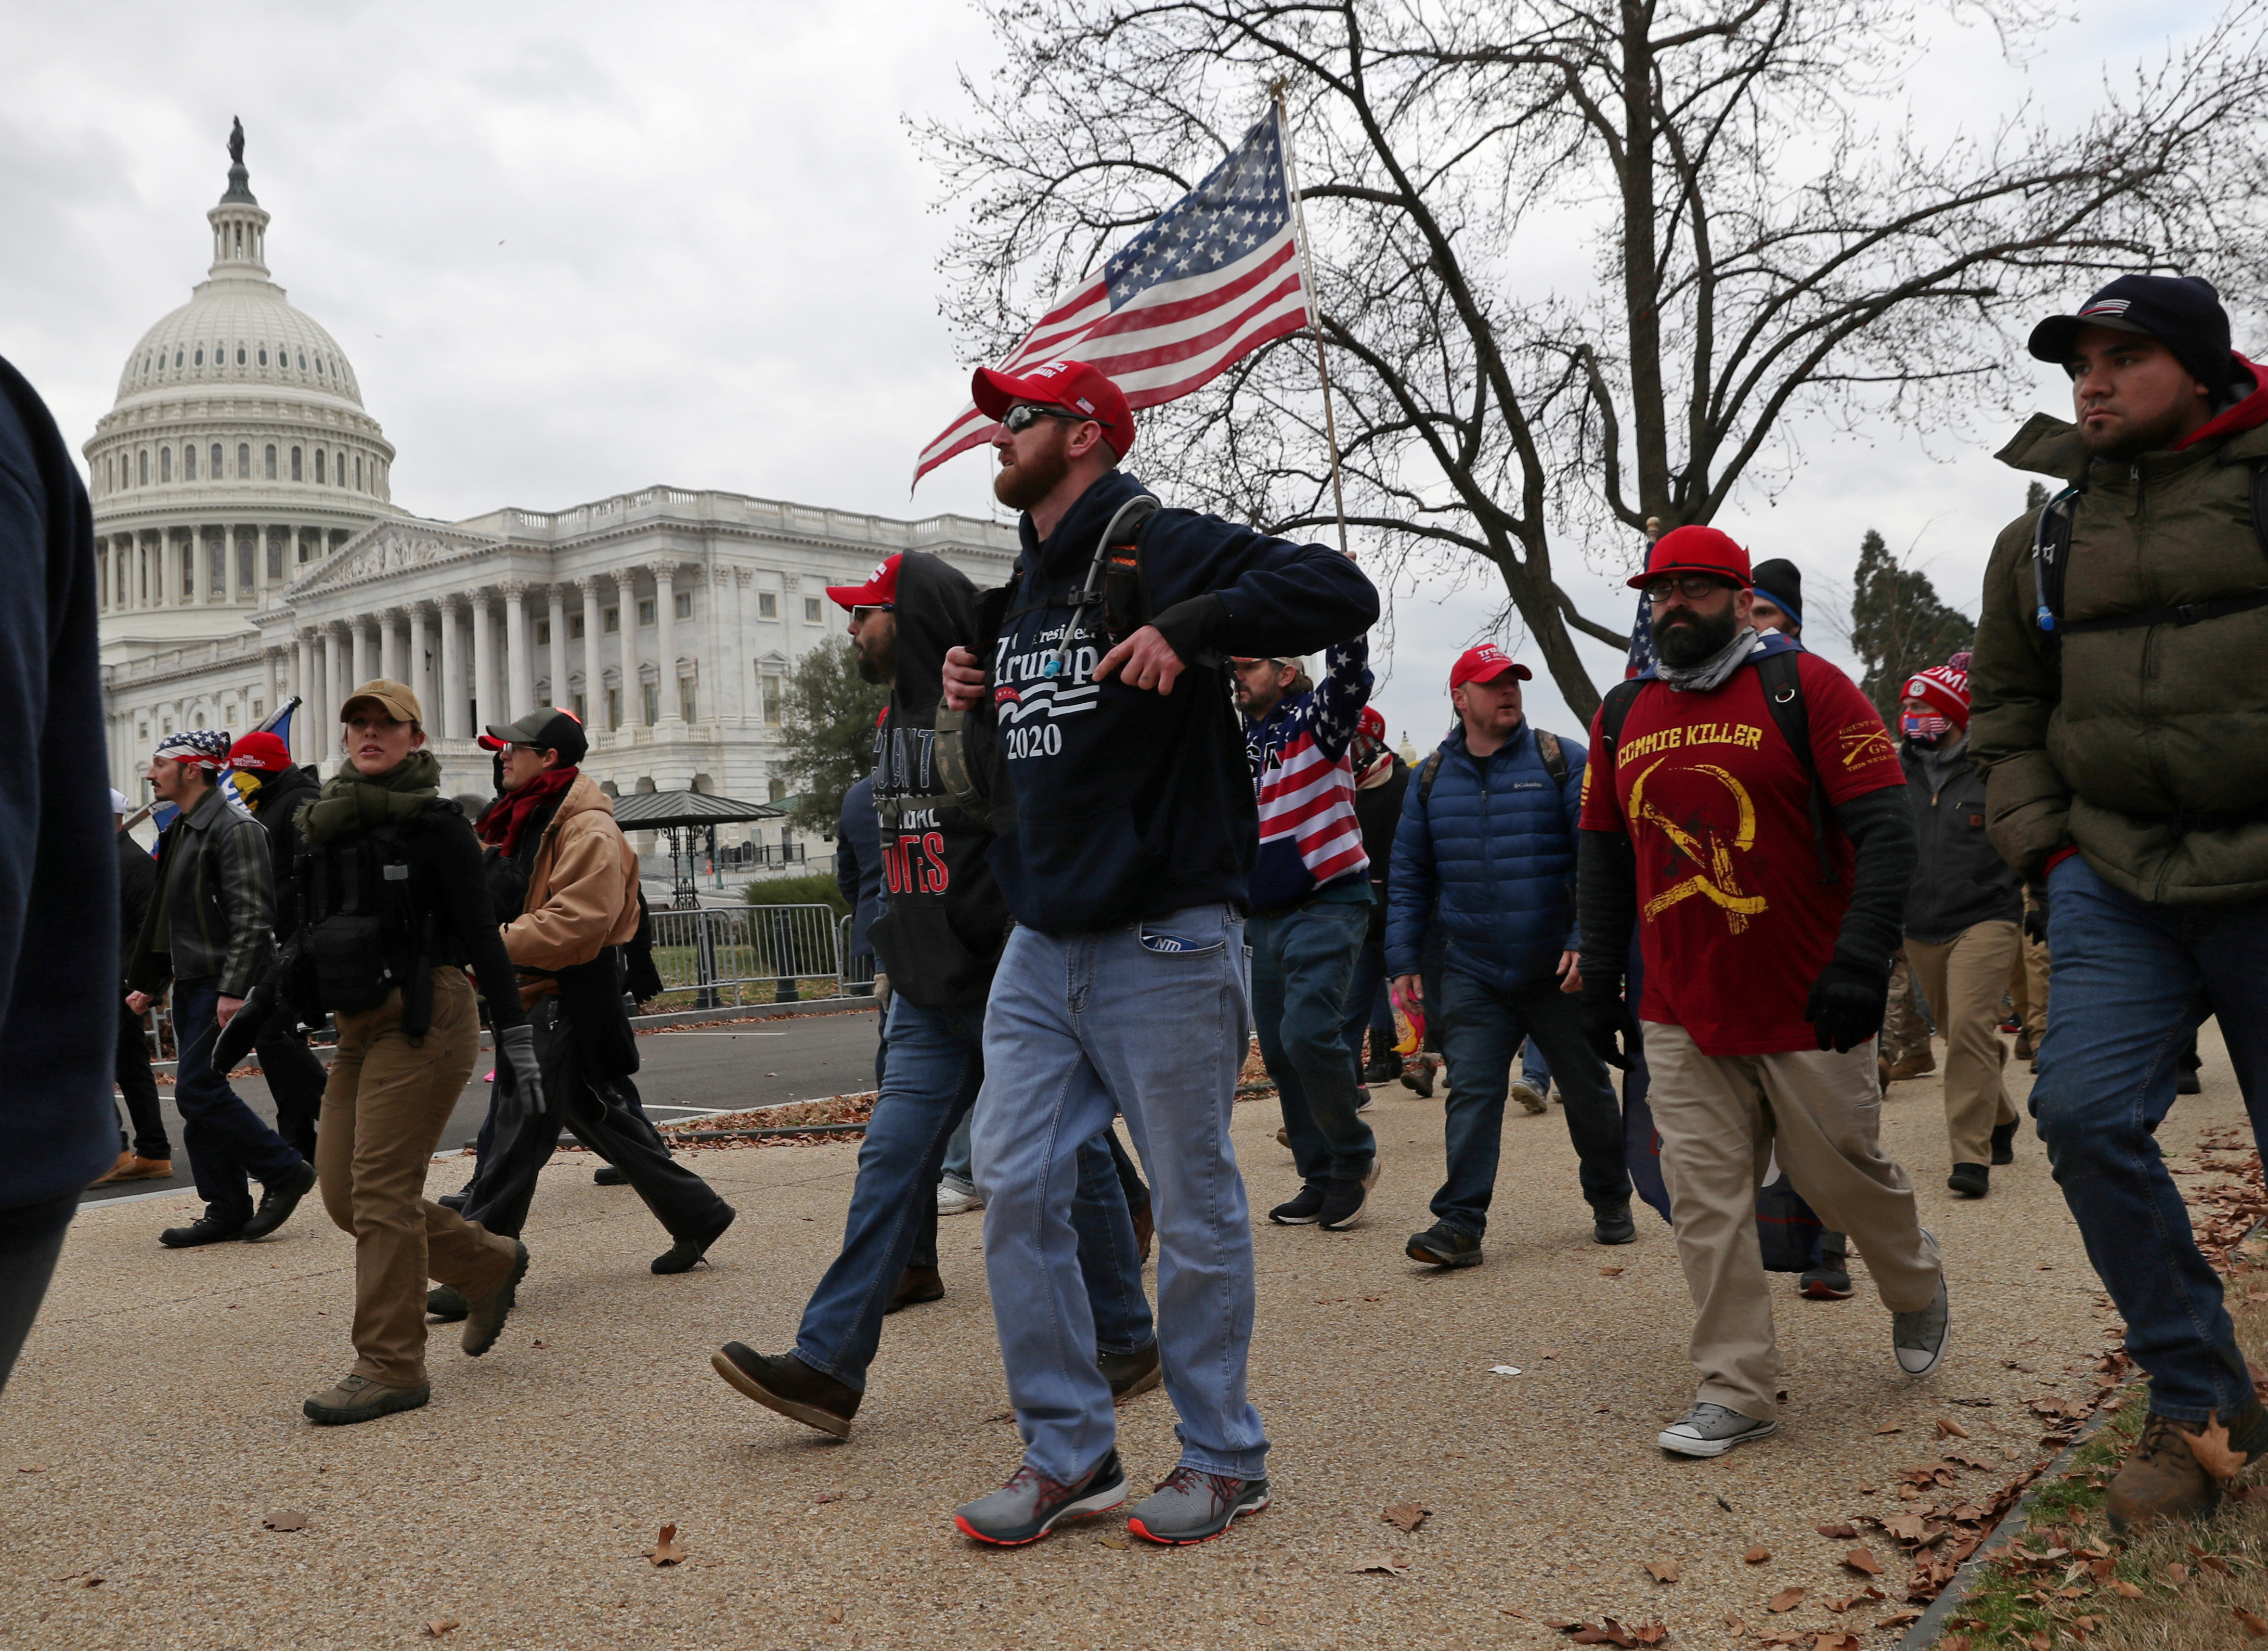 Members of the Proud Boys and supporters of U.S. President Donald Trump show up at the U.S. Capitol Building over an hour before supporters began to storm the building in Washington, U.S., January 6, 2021.  REUTERS/Leah Millis